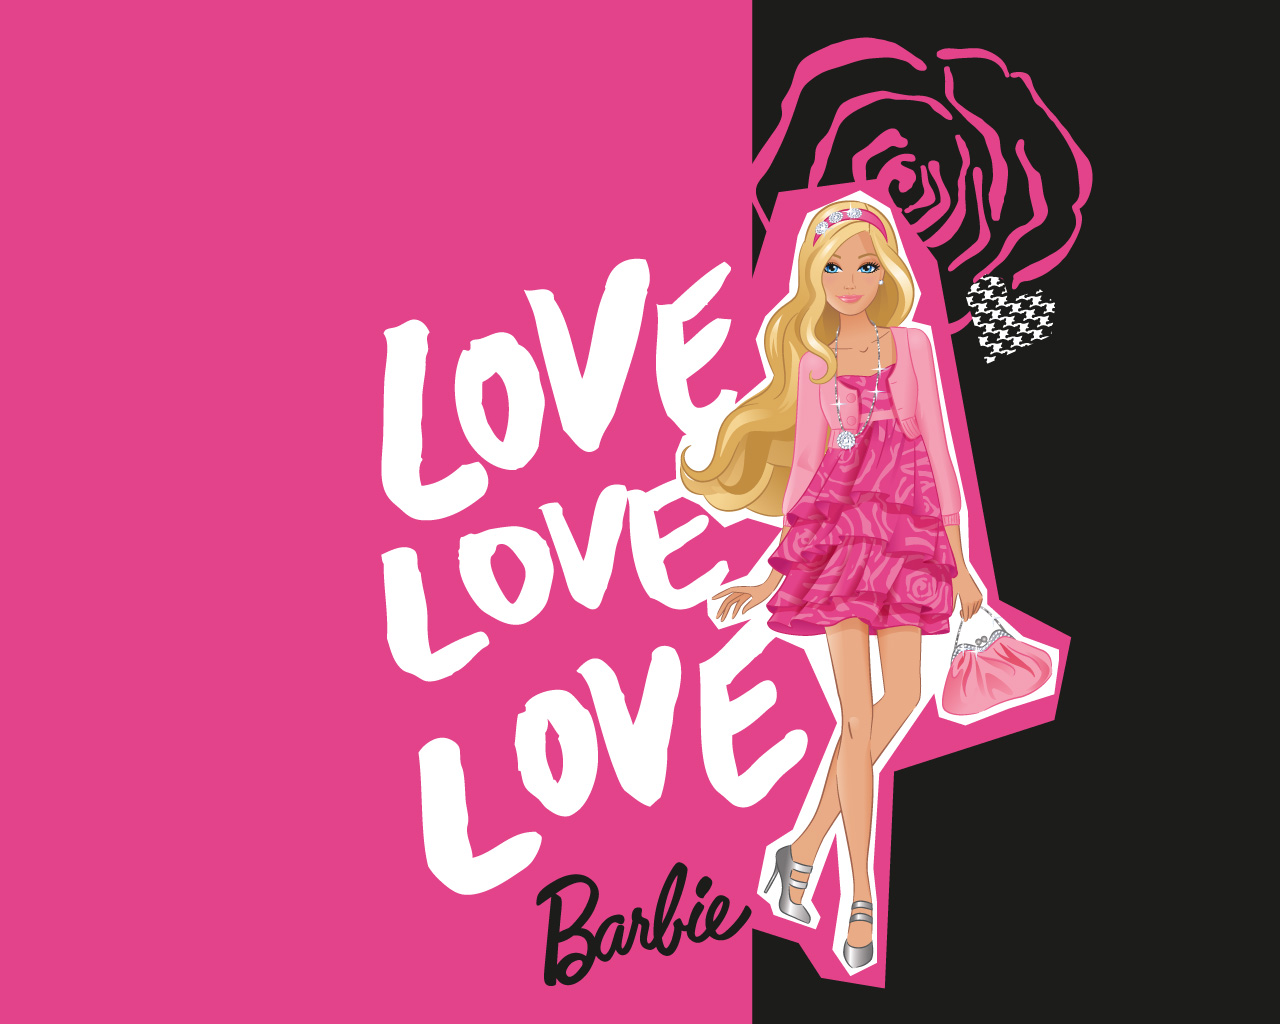 Barbie logo wallpaper wallpapersafari 1barbiemoviefan images barbie wallpaper photos 33731536 voltagebd Images